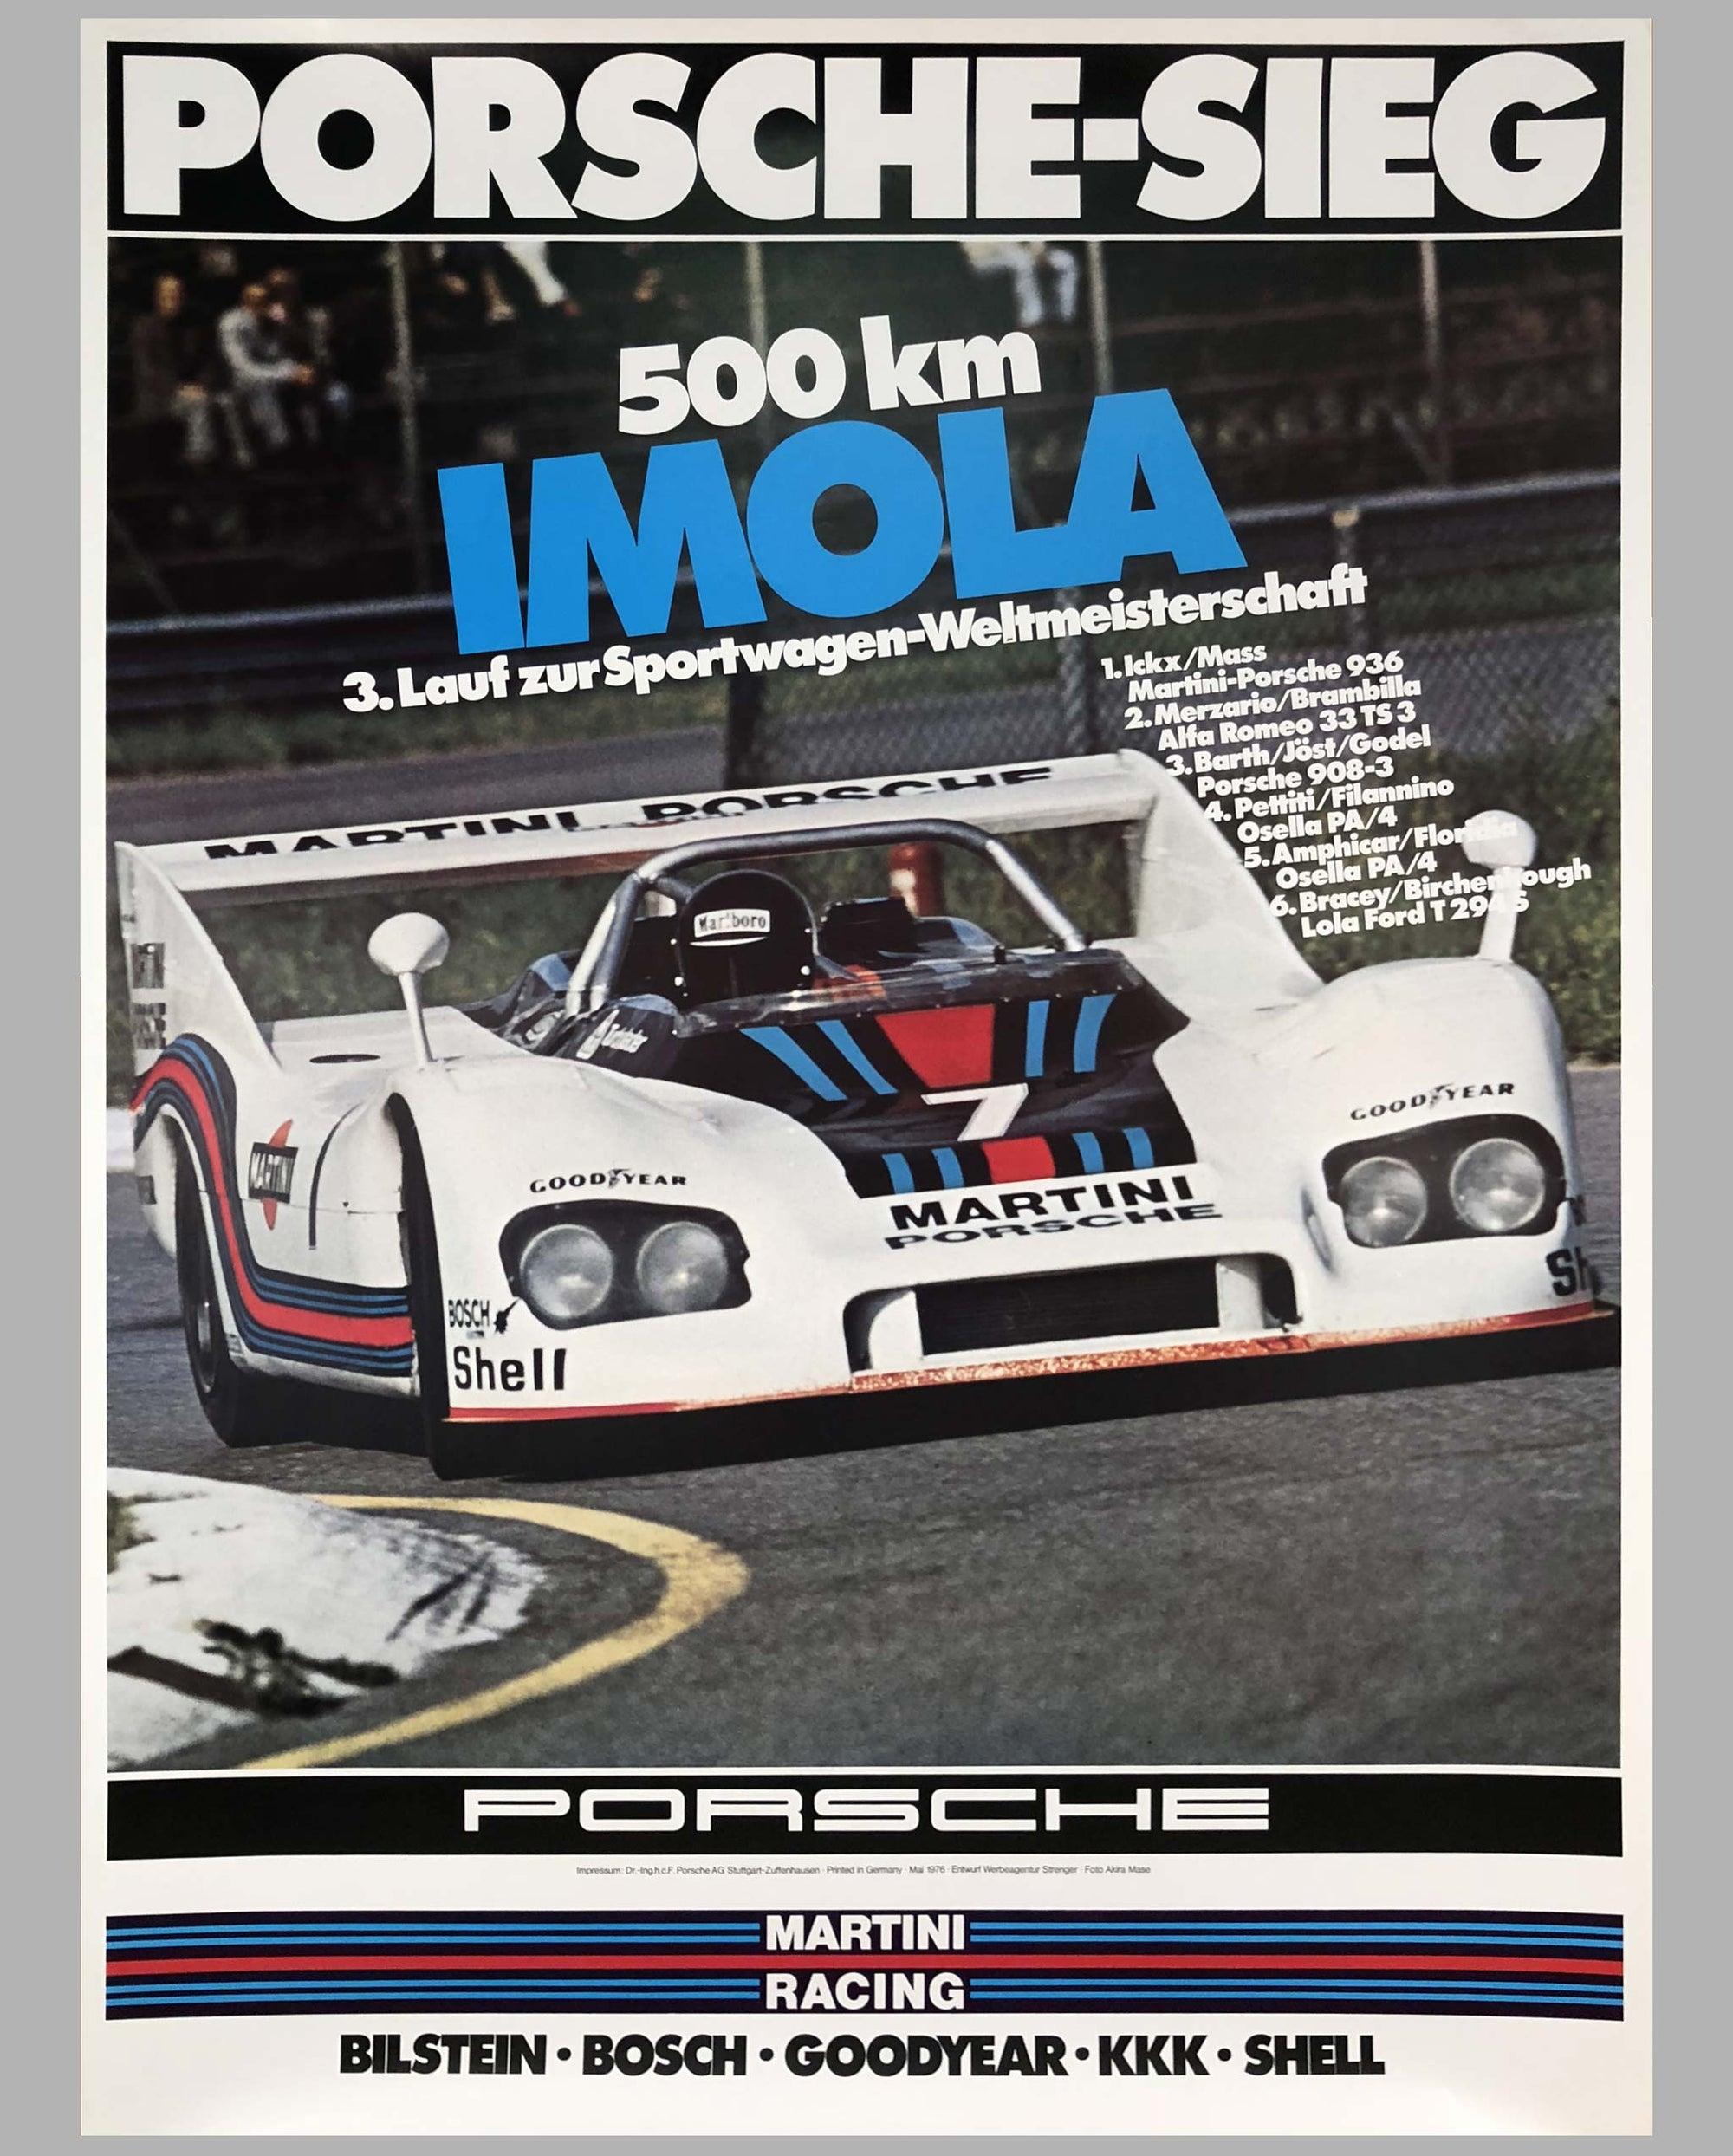 1976 Porsche Factory Victory Poster 500 Km of Imola